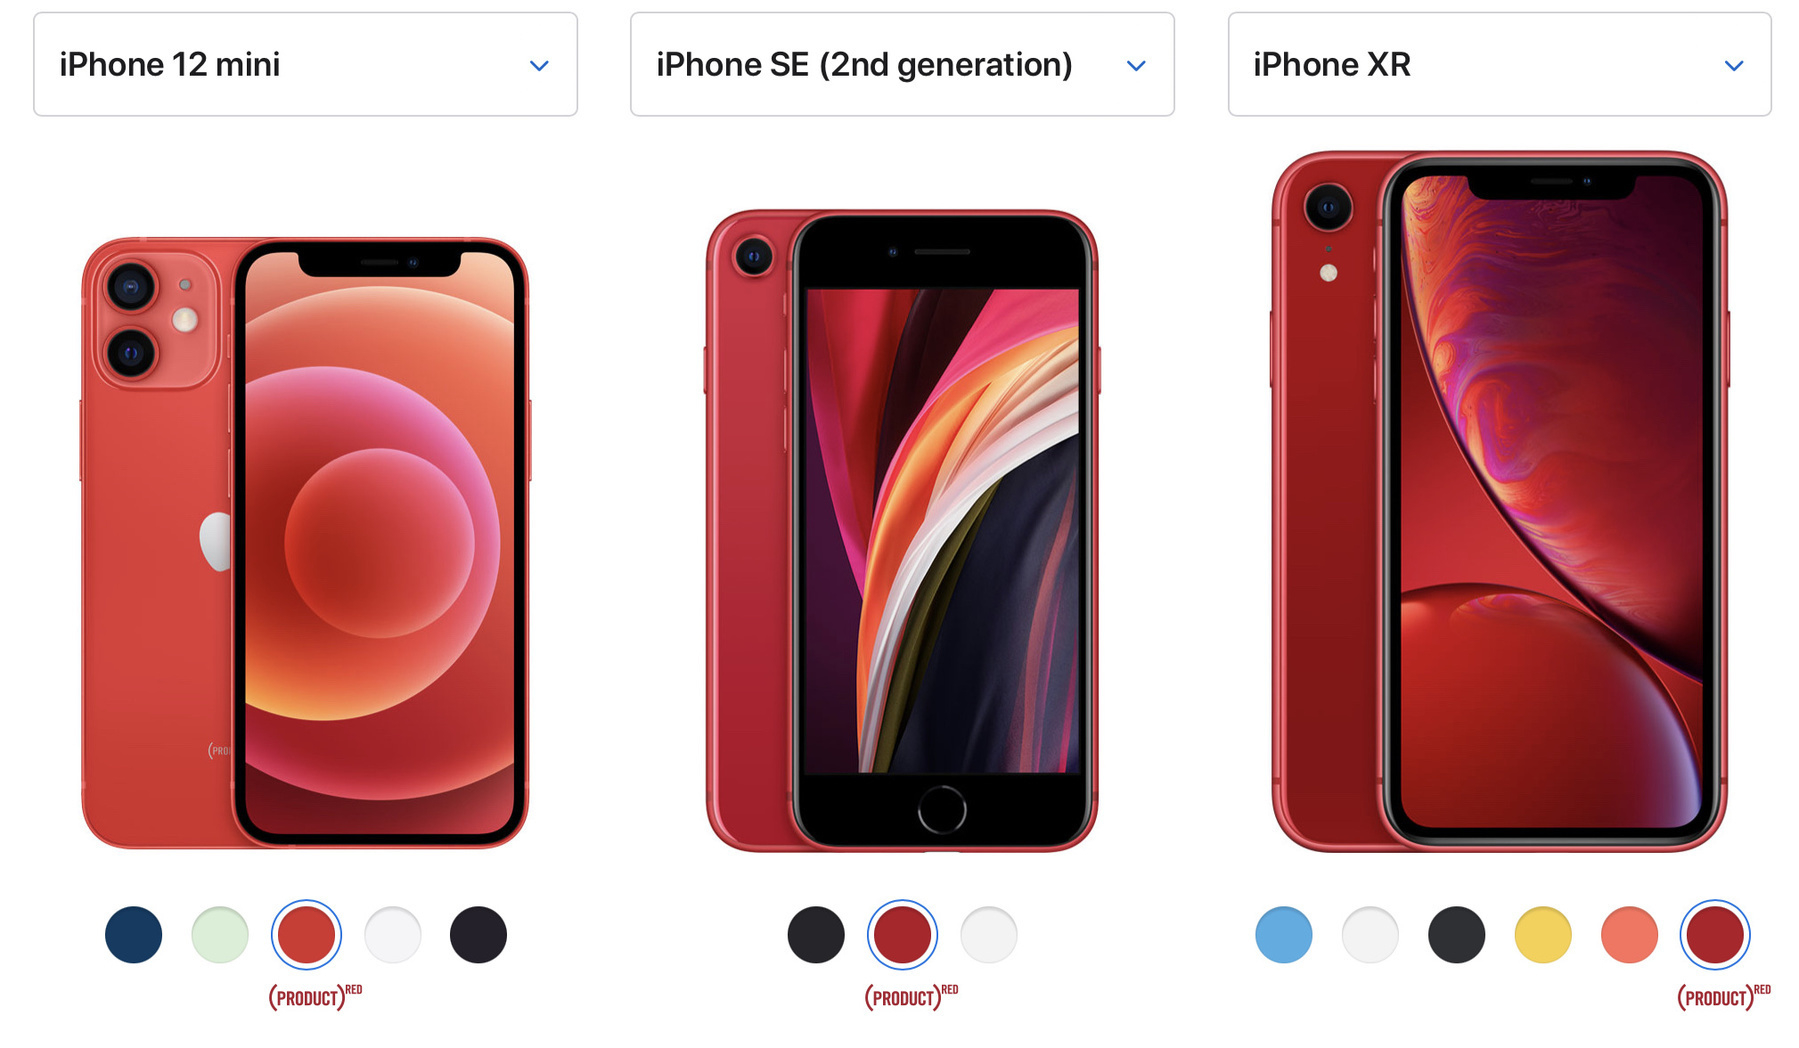 the iphone Xr, SE 2 and 12 mini is Product Red colours. the newer the phone, the closer to orange it is.